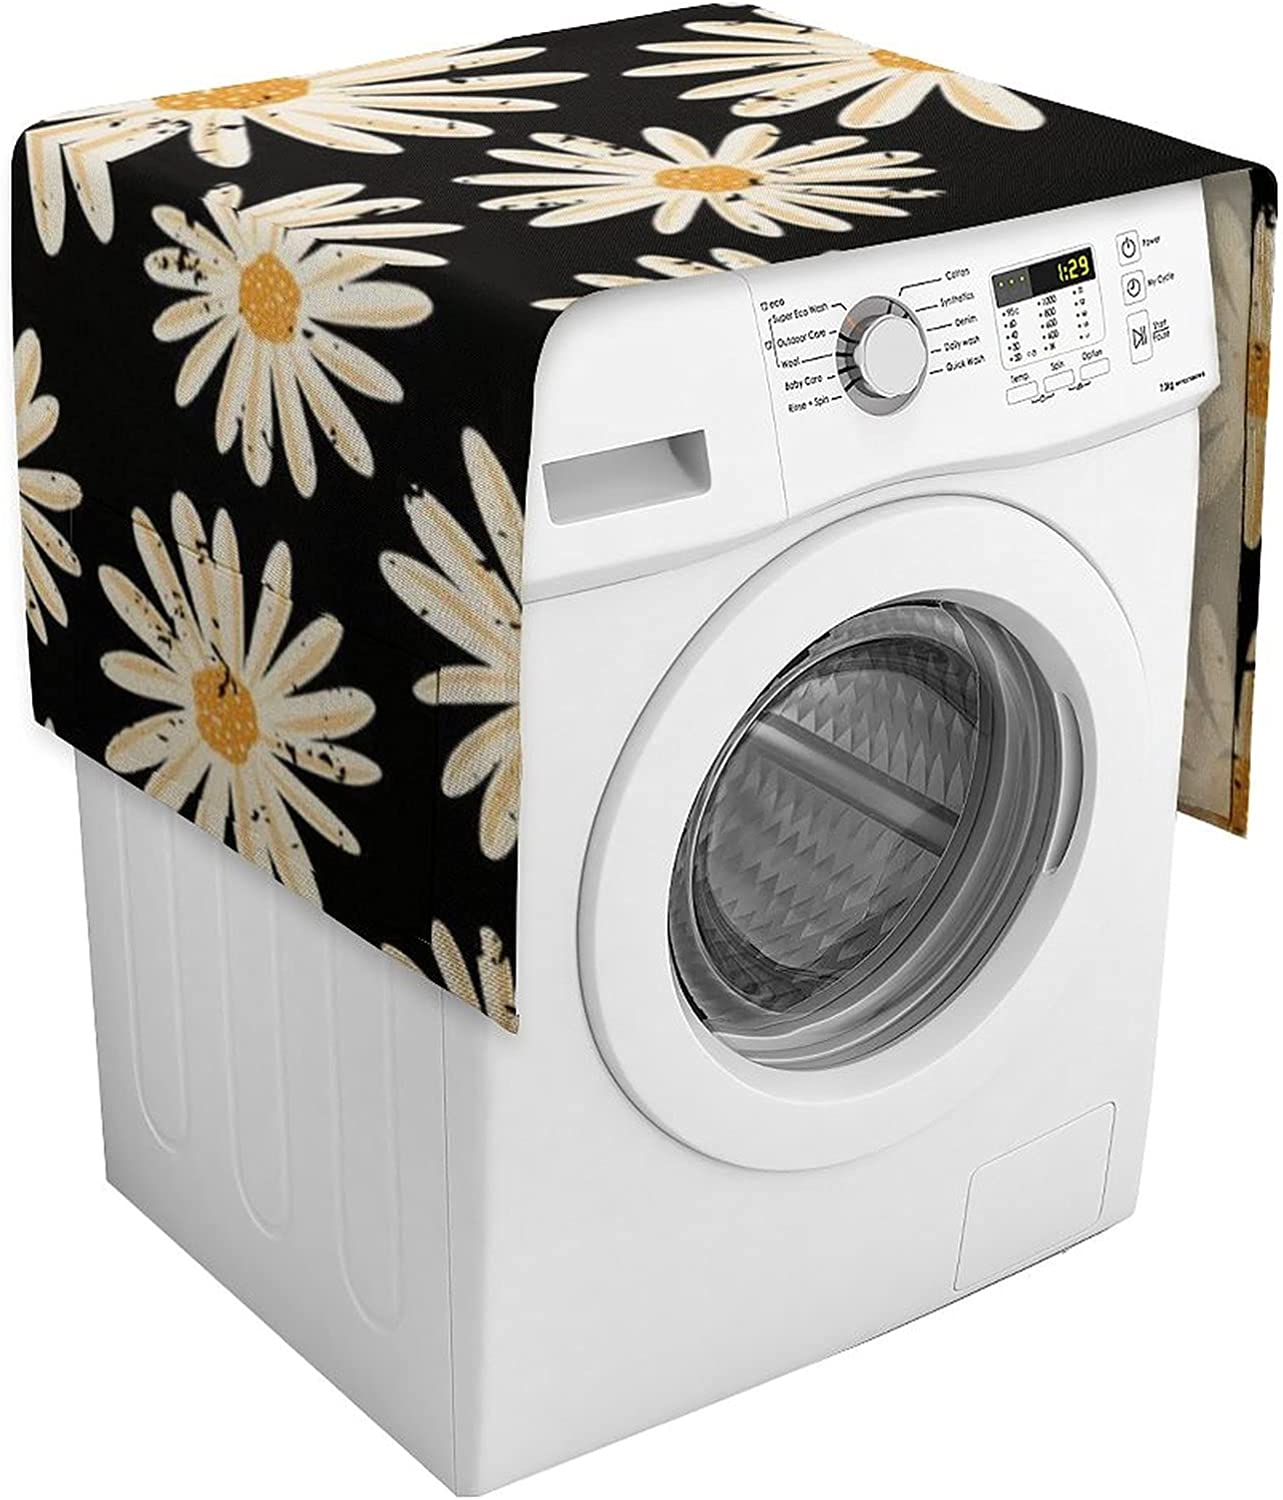 Sale special price Multi-Purpose Washing Machine Covers shop Washer Protector Appliance